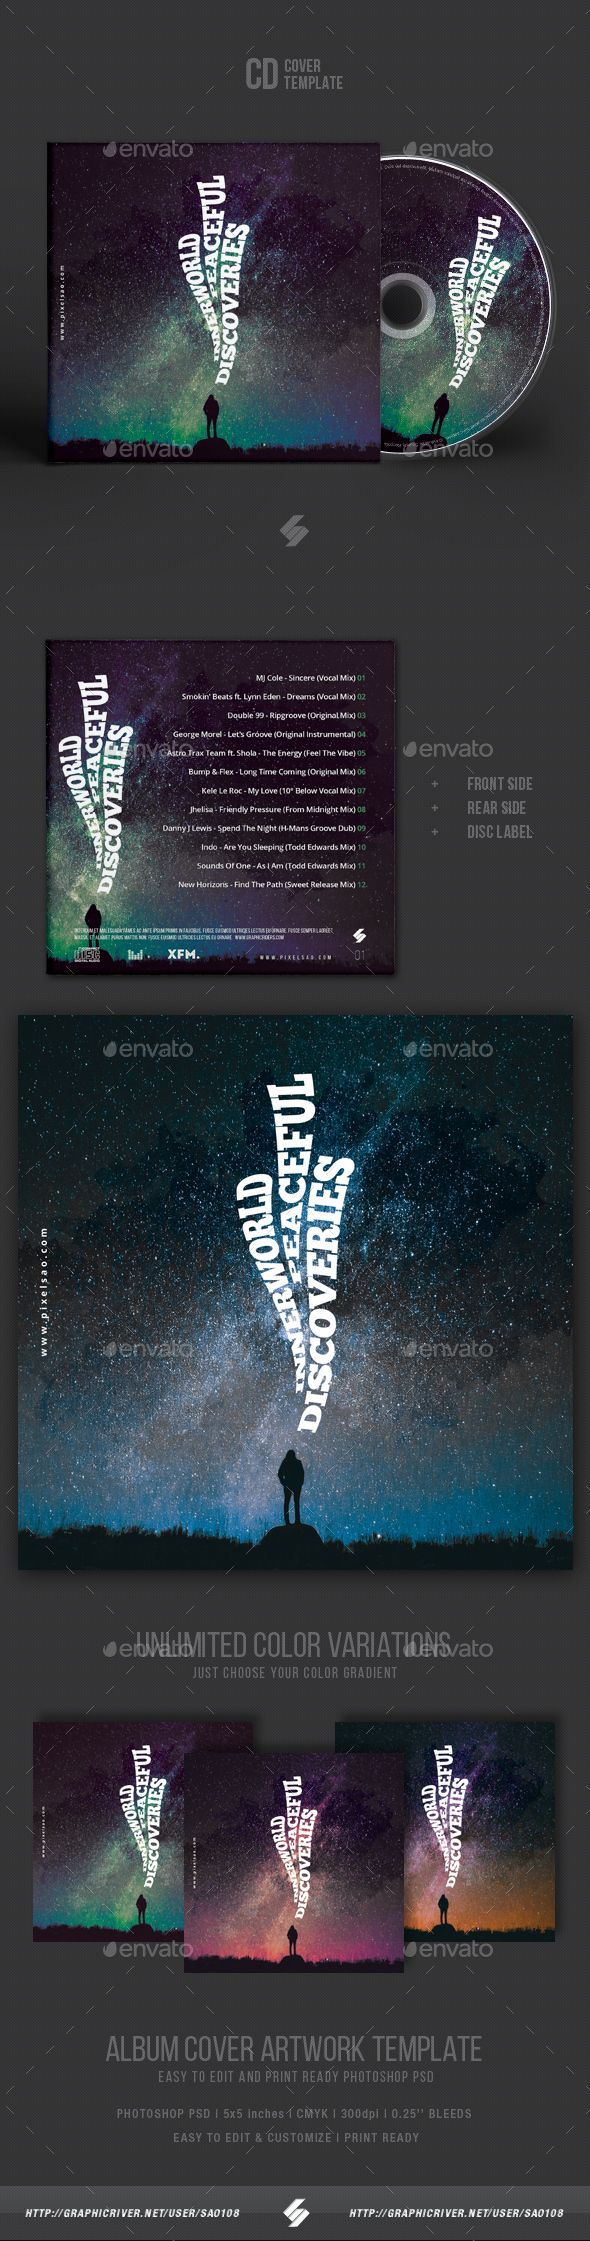 Inner World Discoveries - Creative CD Cover Artwork ...